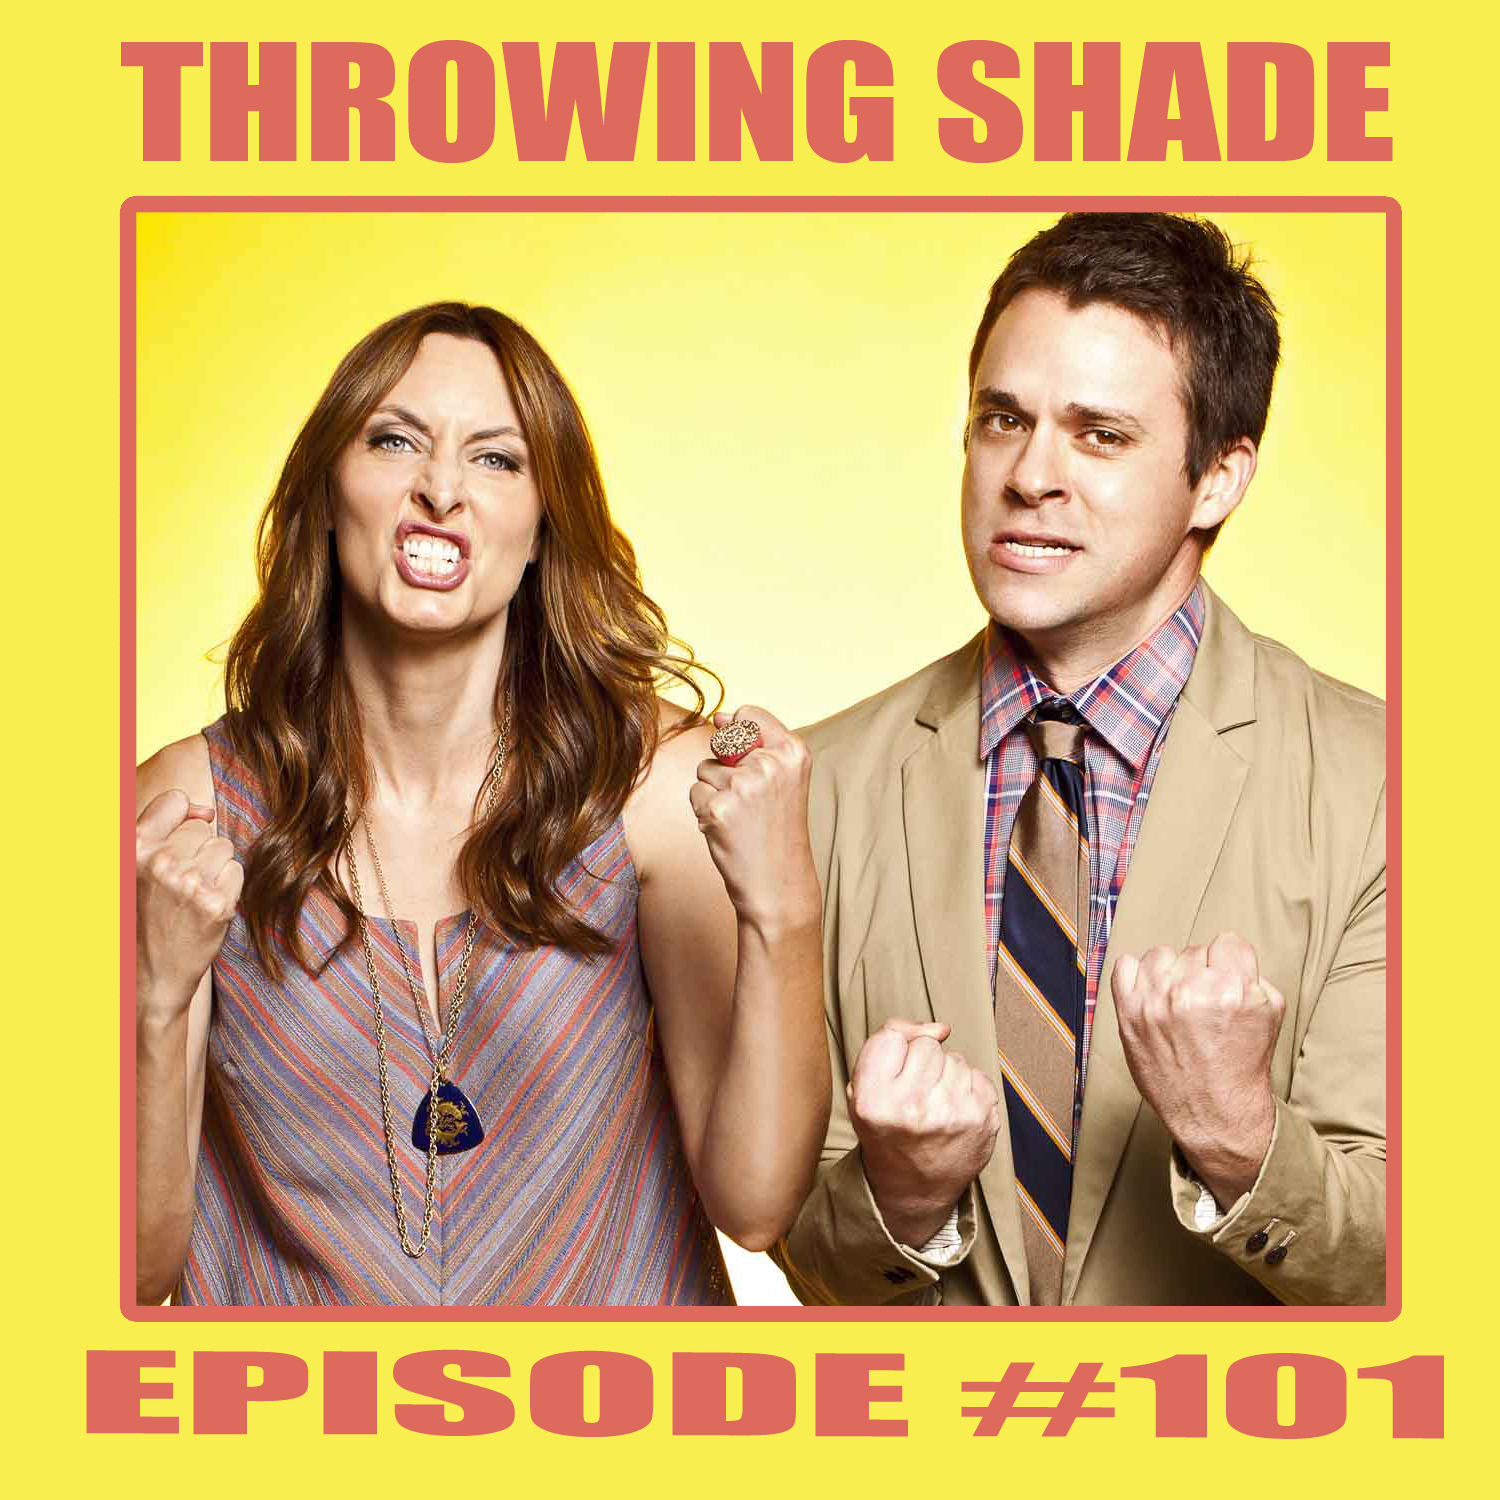 TS101: The Pull-Out Method, Gay Marriage in the Military, Single People, Weekend at Bernie's, Young Life